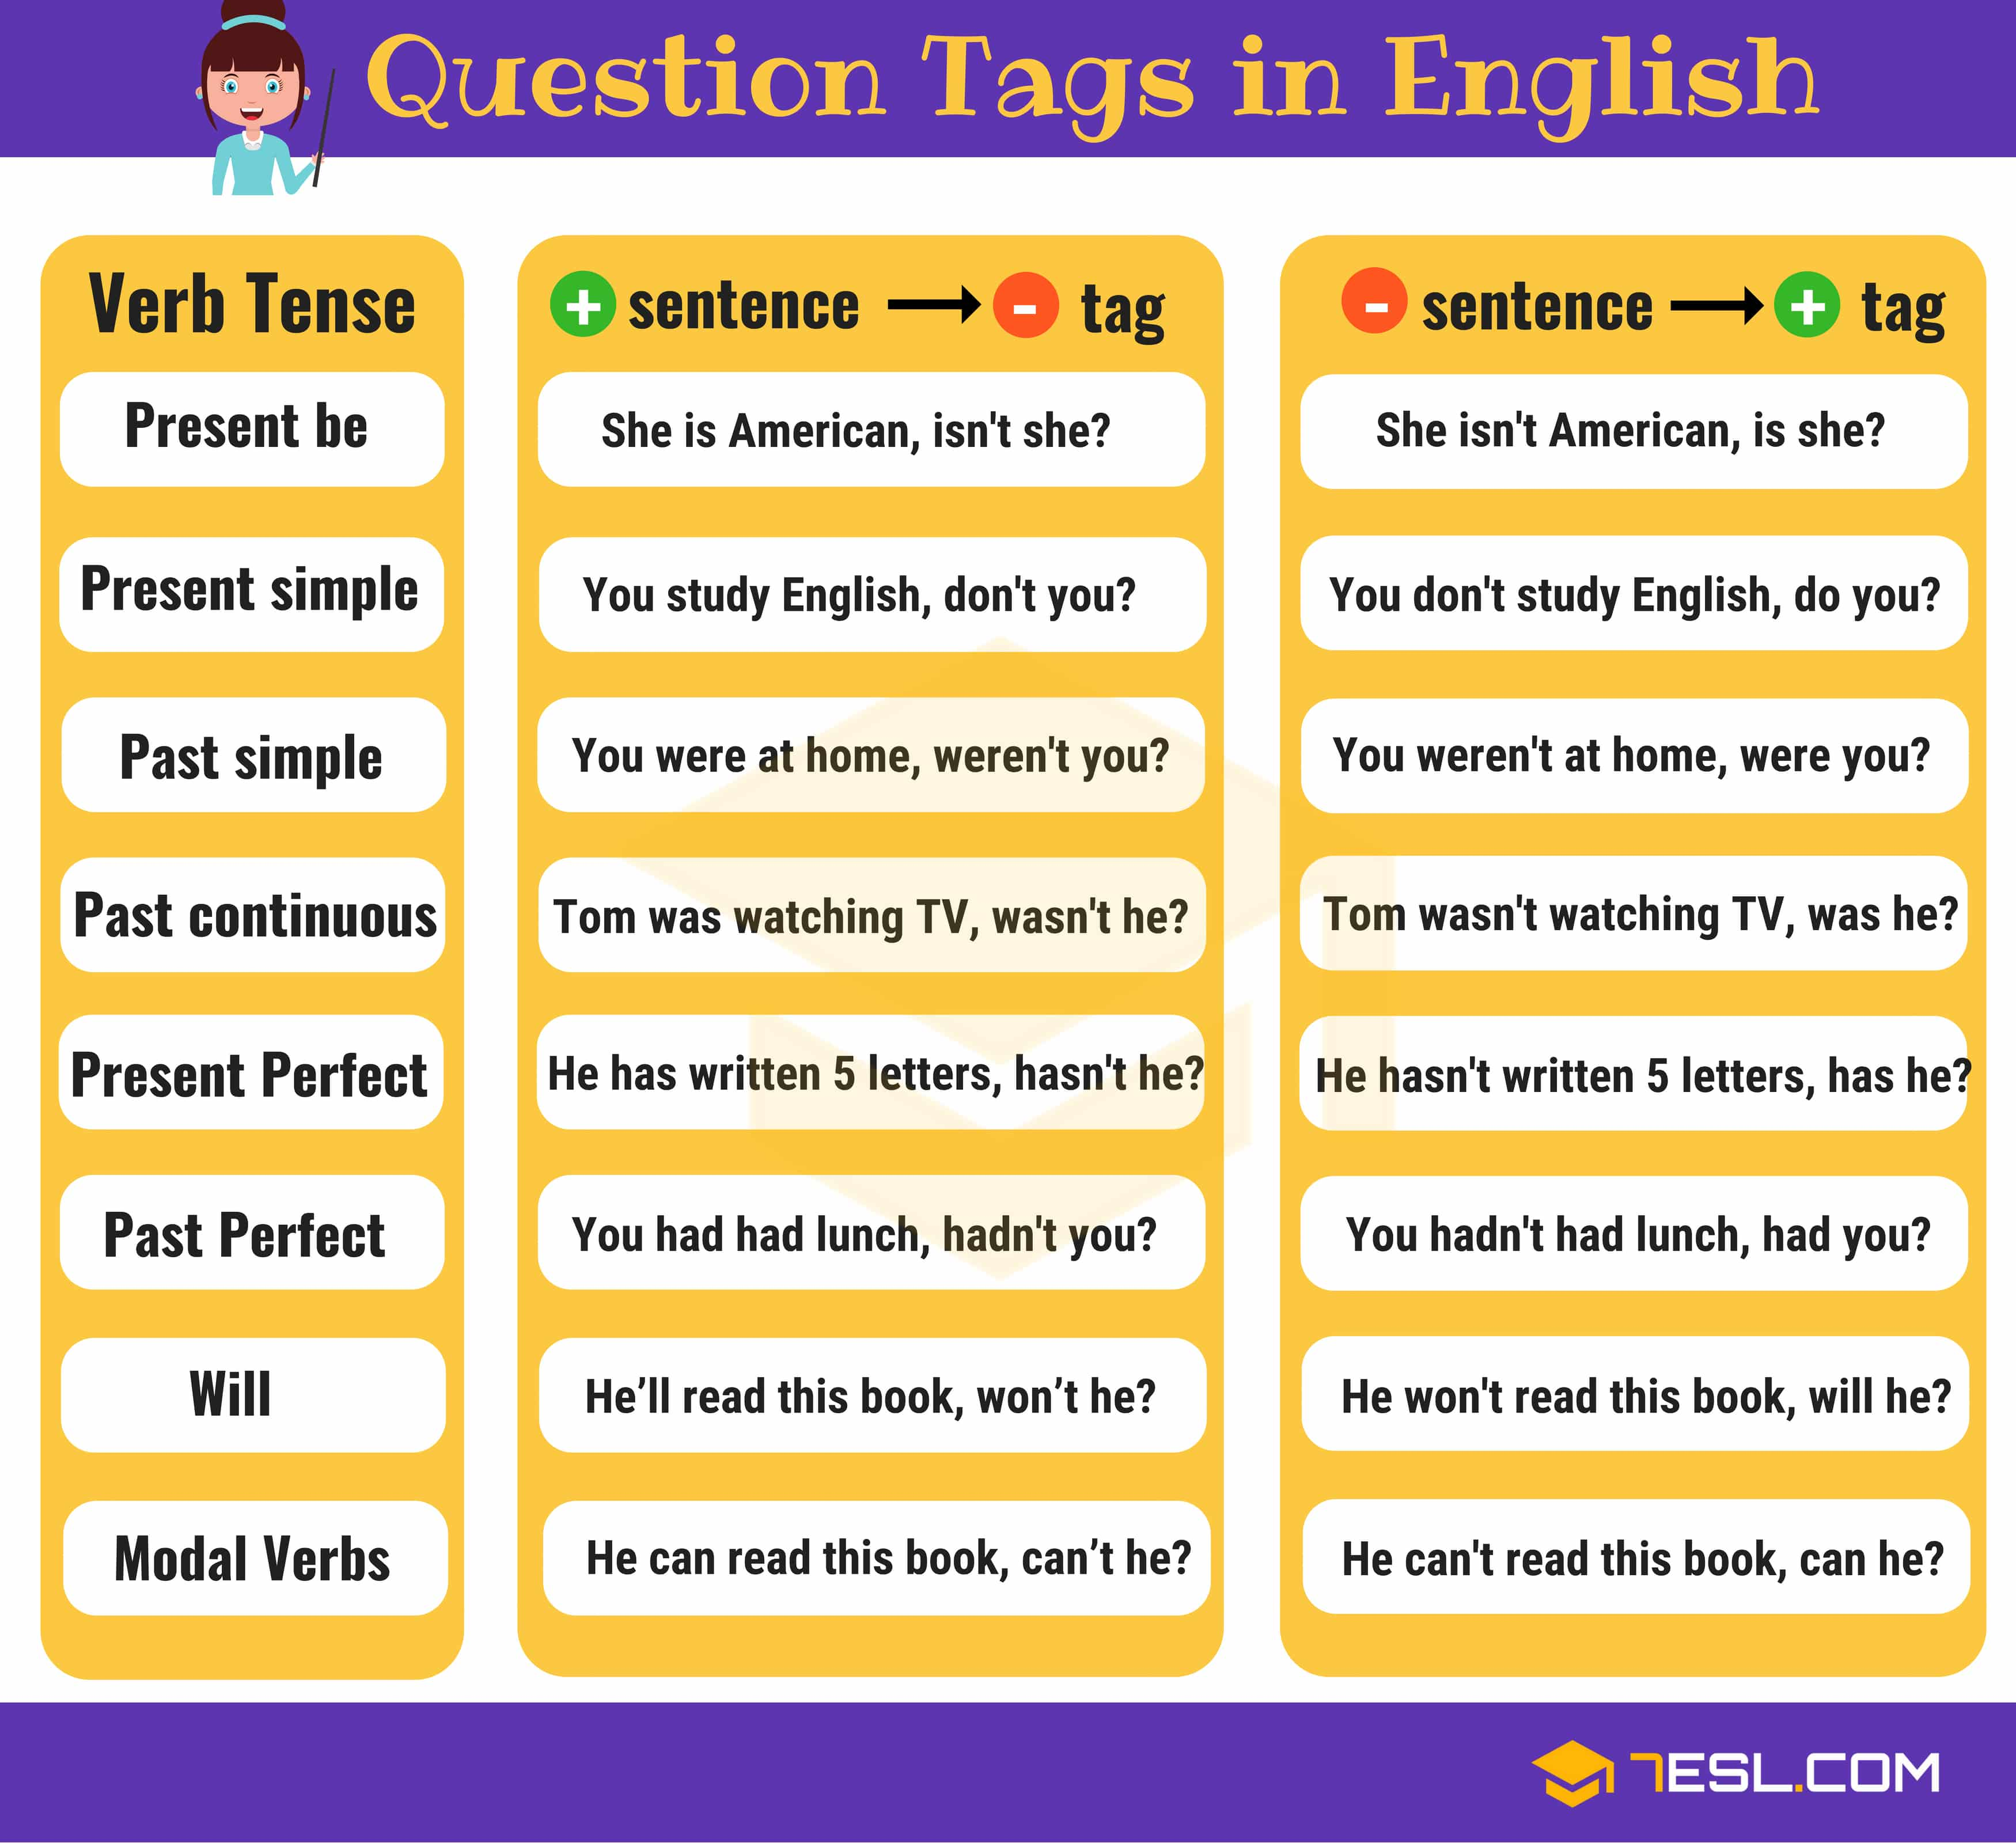 Question Tags in English: Useful Rules & Examples